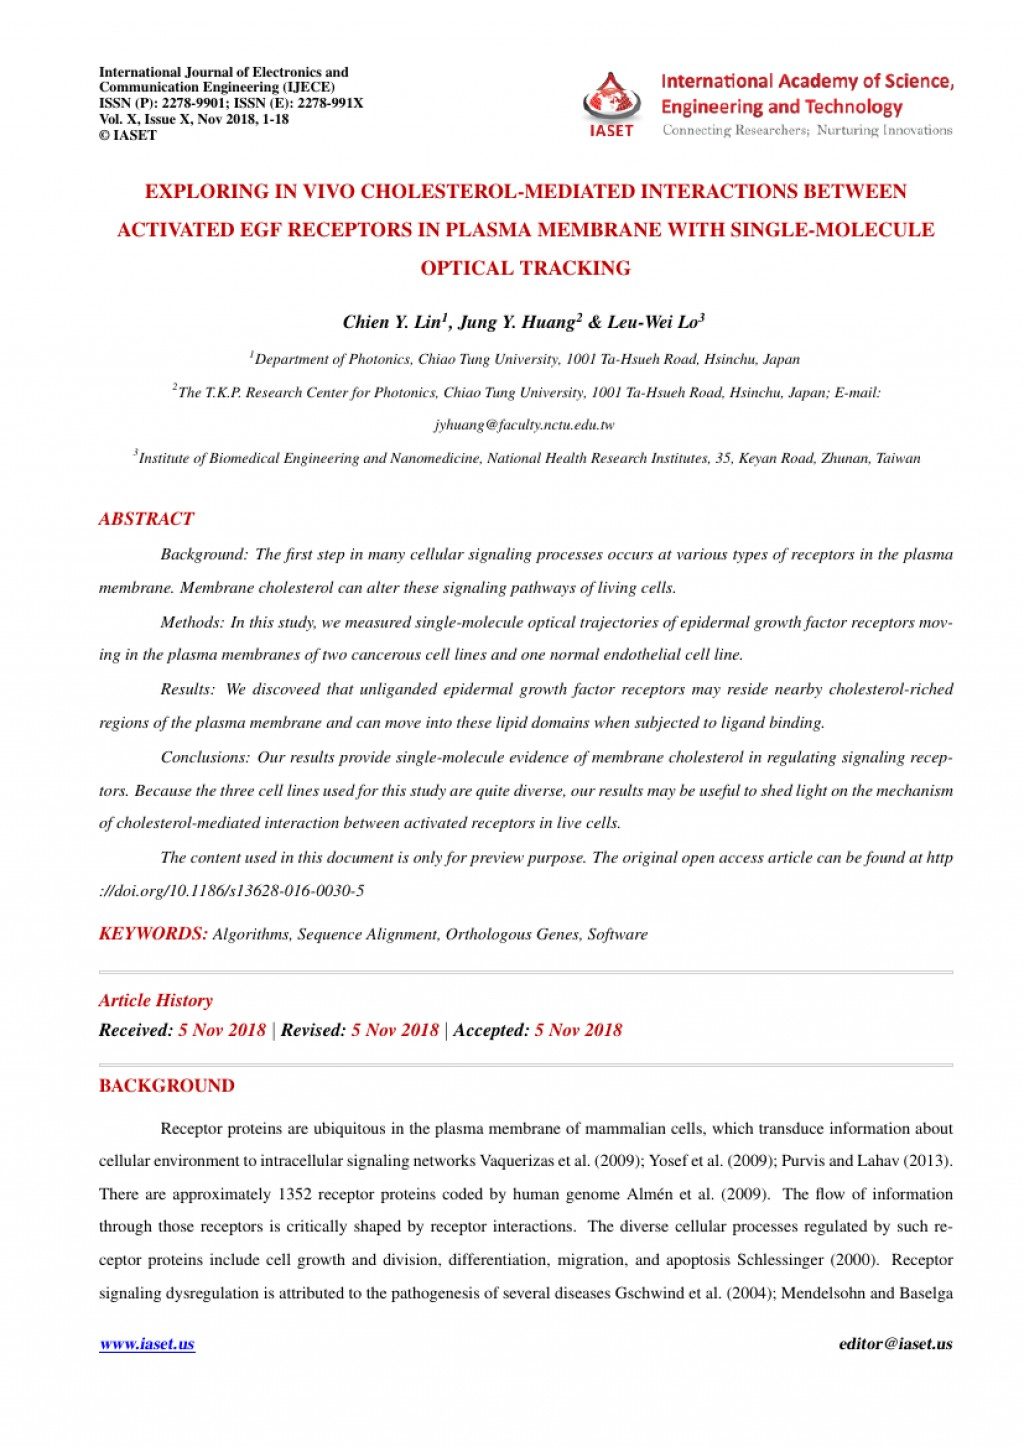 004 How To Get Research Paper Published In International Journal Article Frightening Large